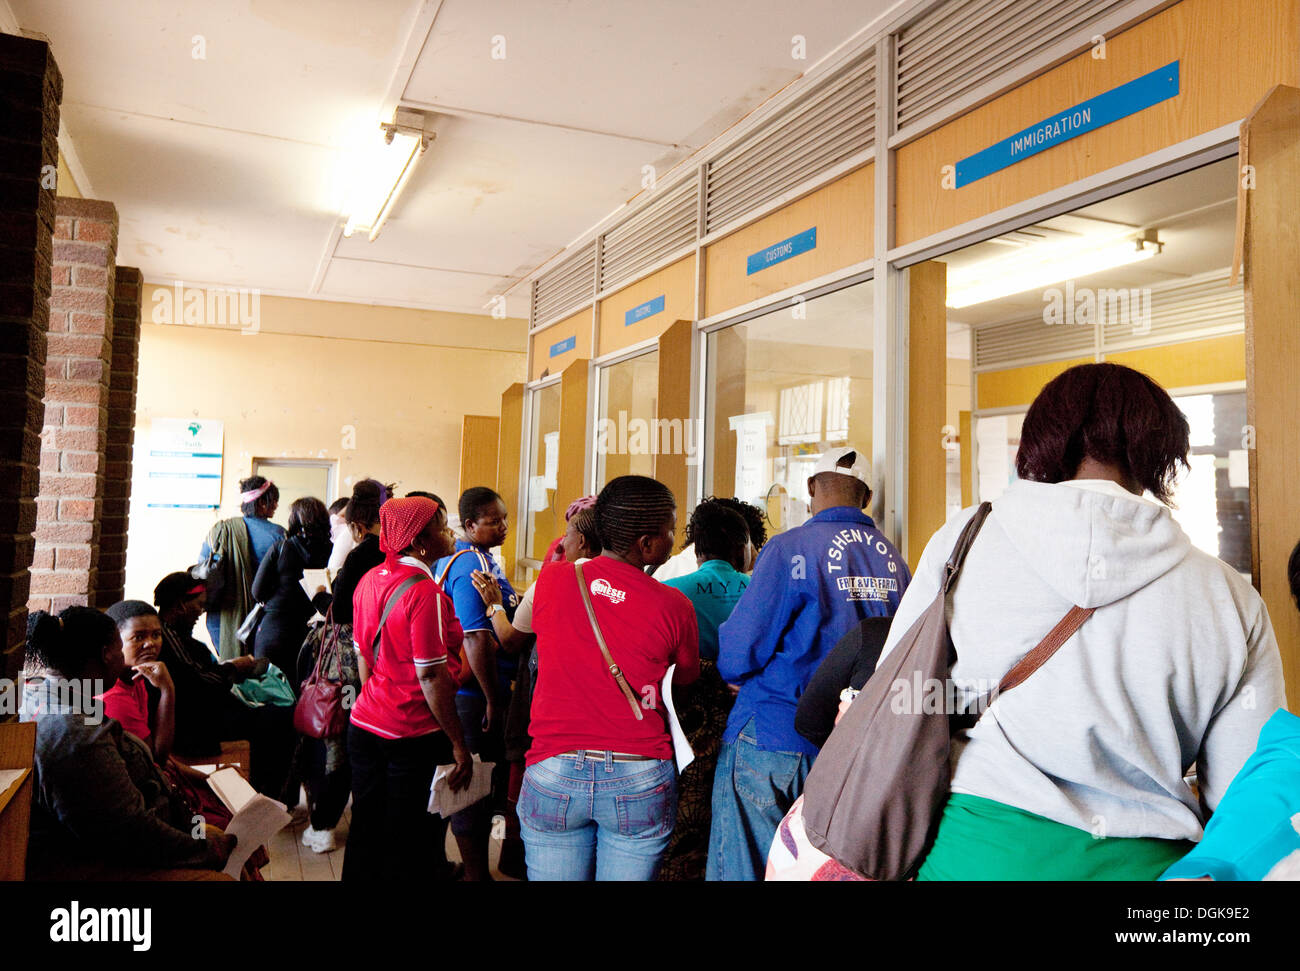 Tourists and local people in the interior of Kazungula Border post, entering Botswana, Africa - Stock Image